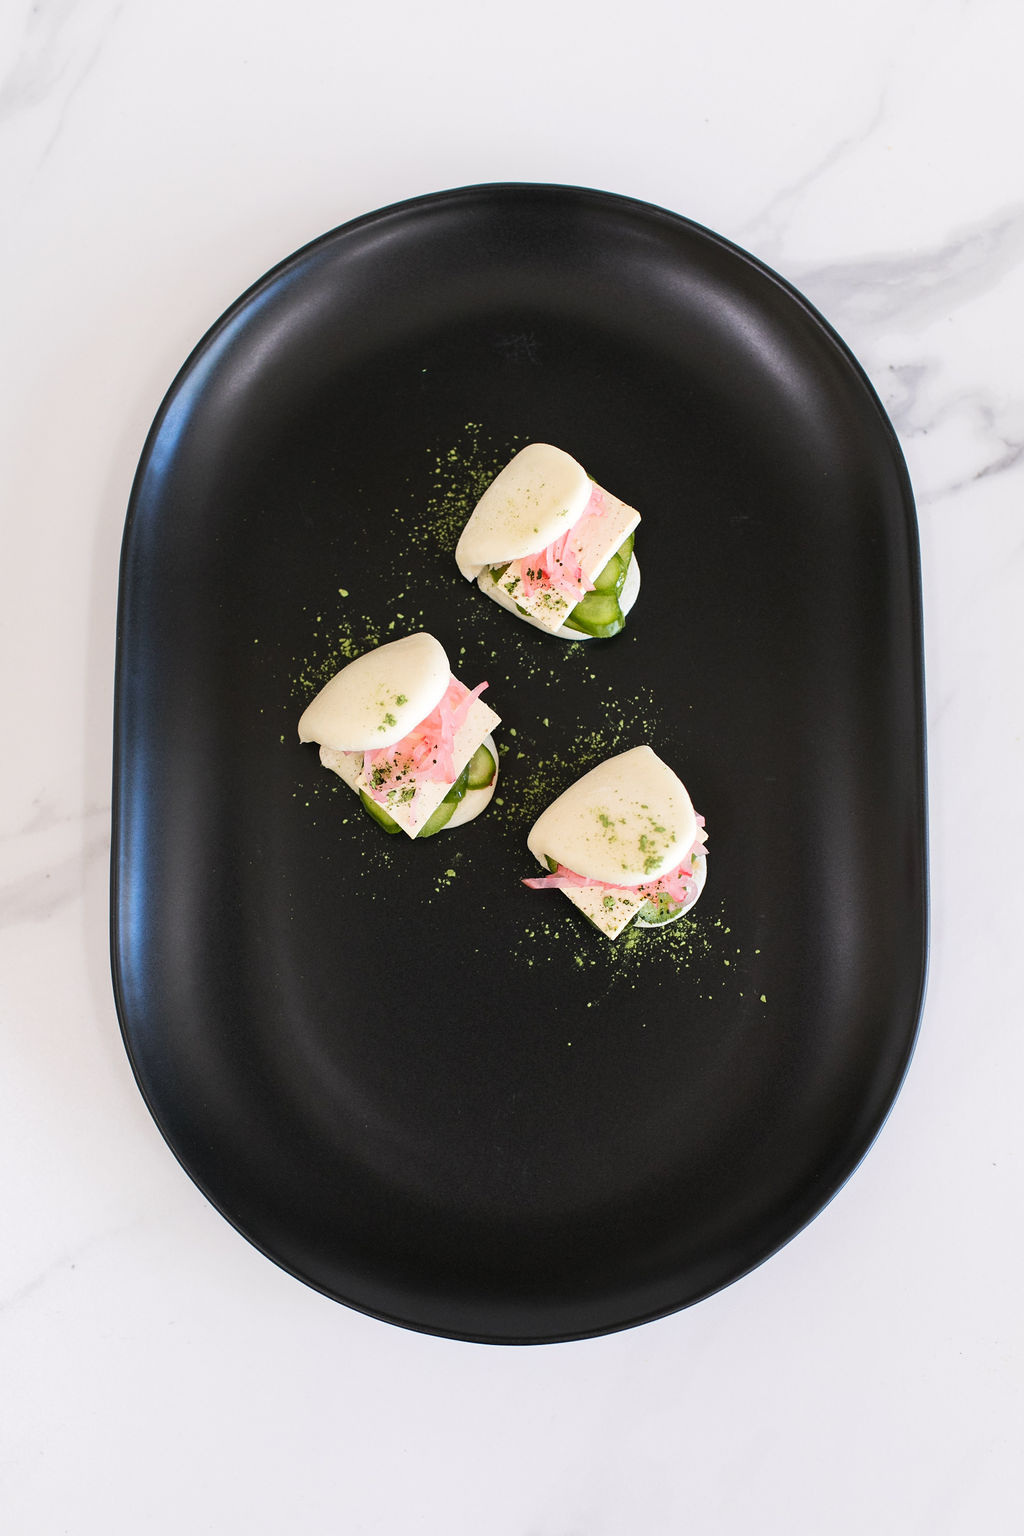 C - Steamed bao bun filled with smoked tofu, chili sauce, pickled cucumber and radish salad3.jpg